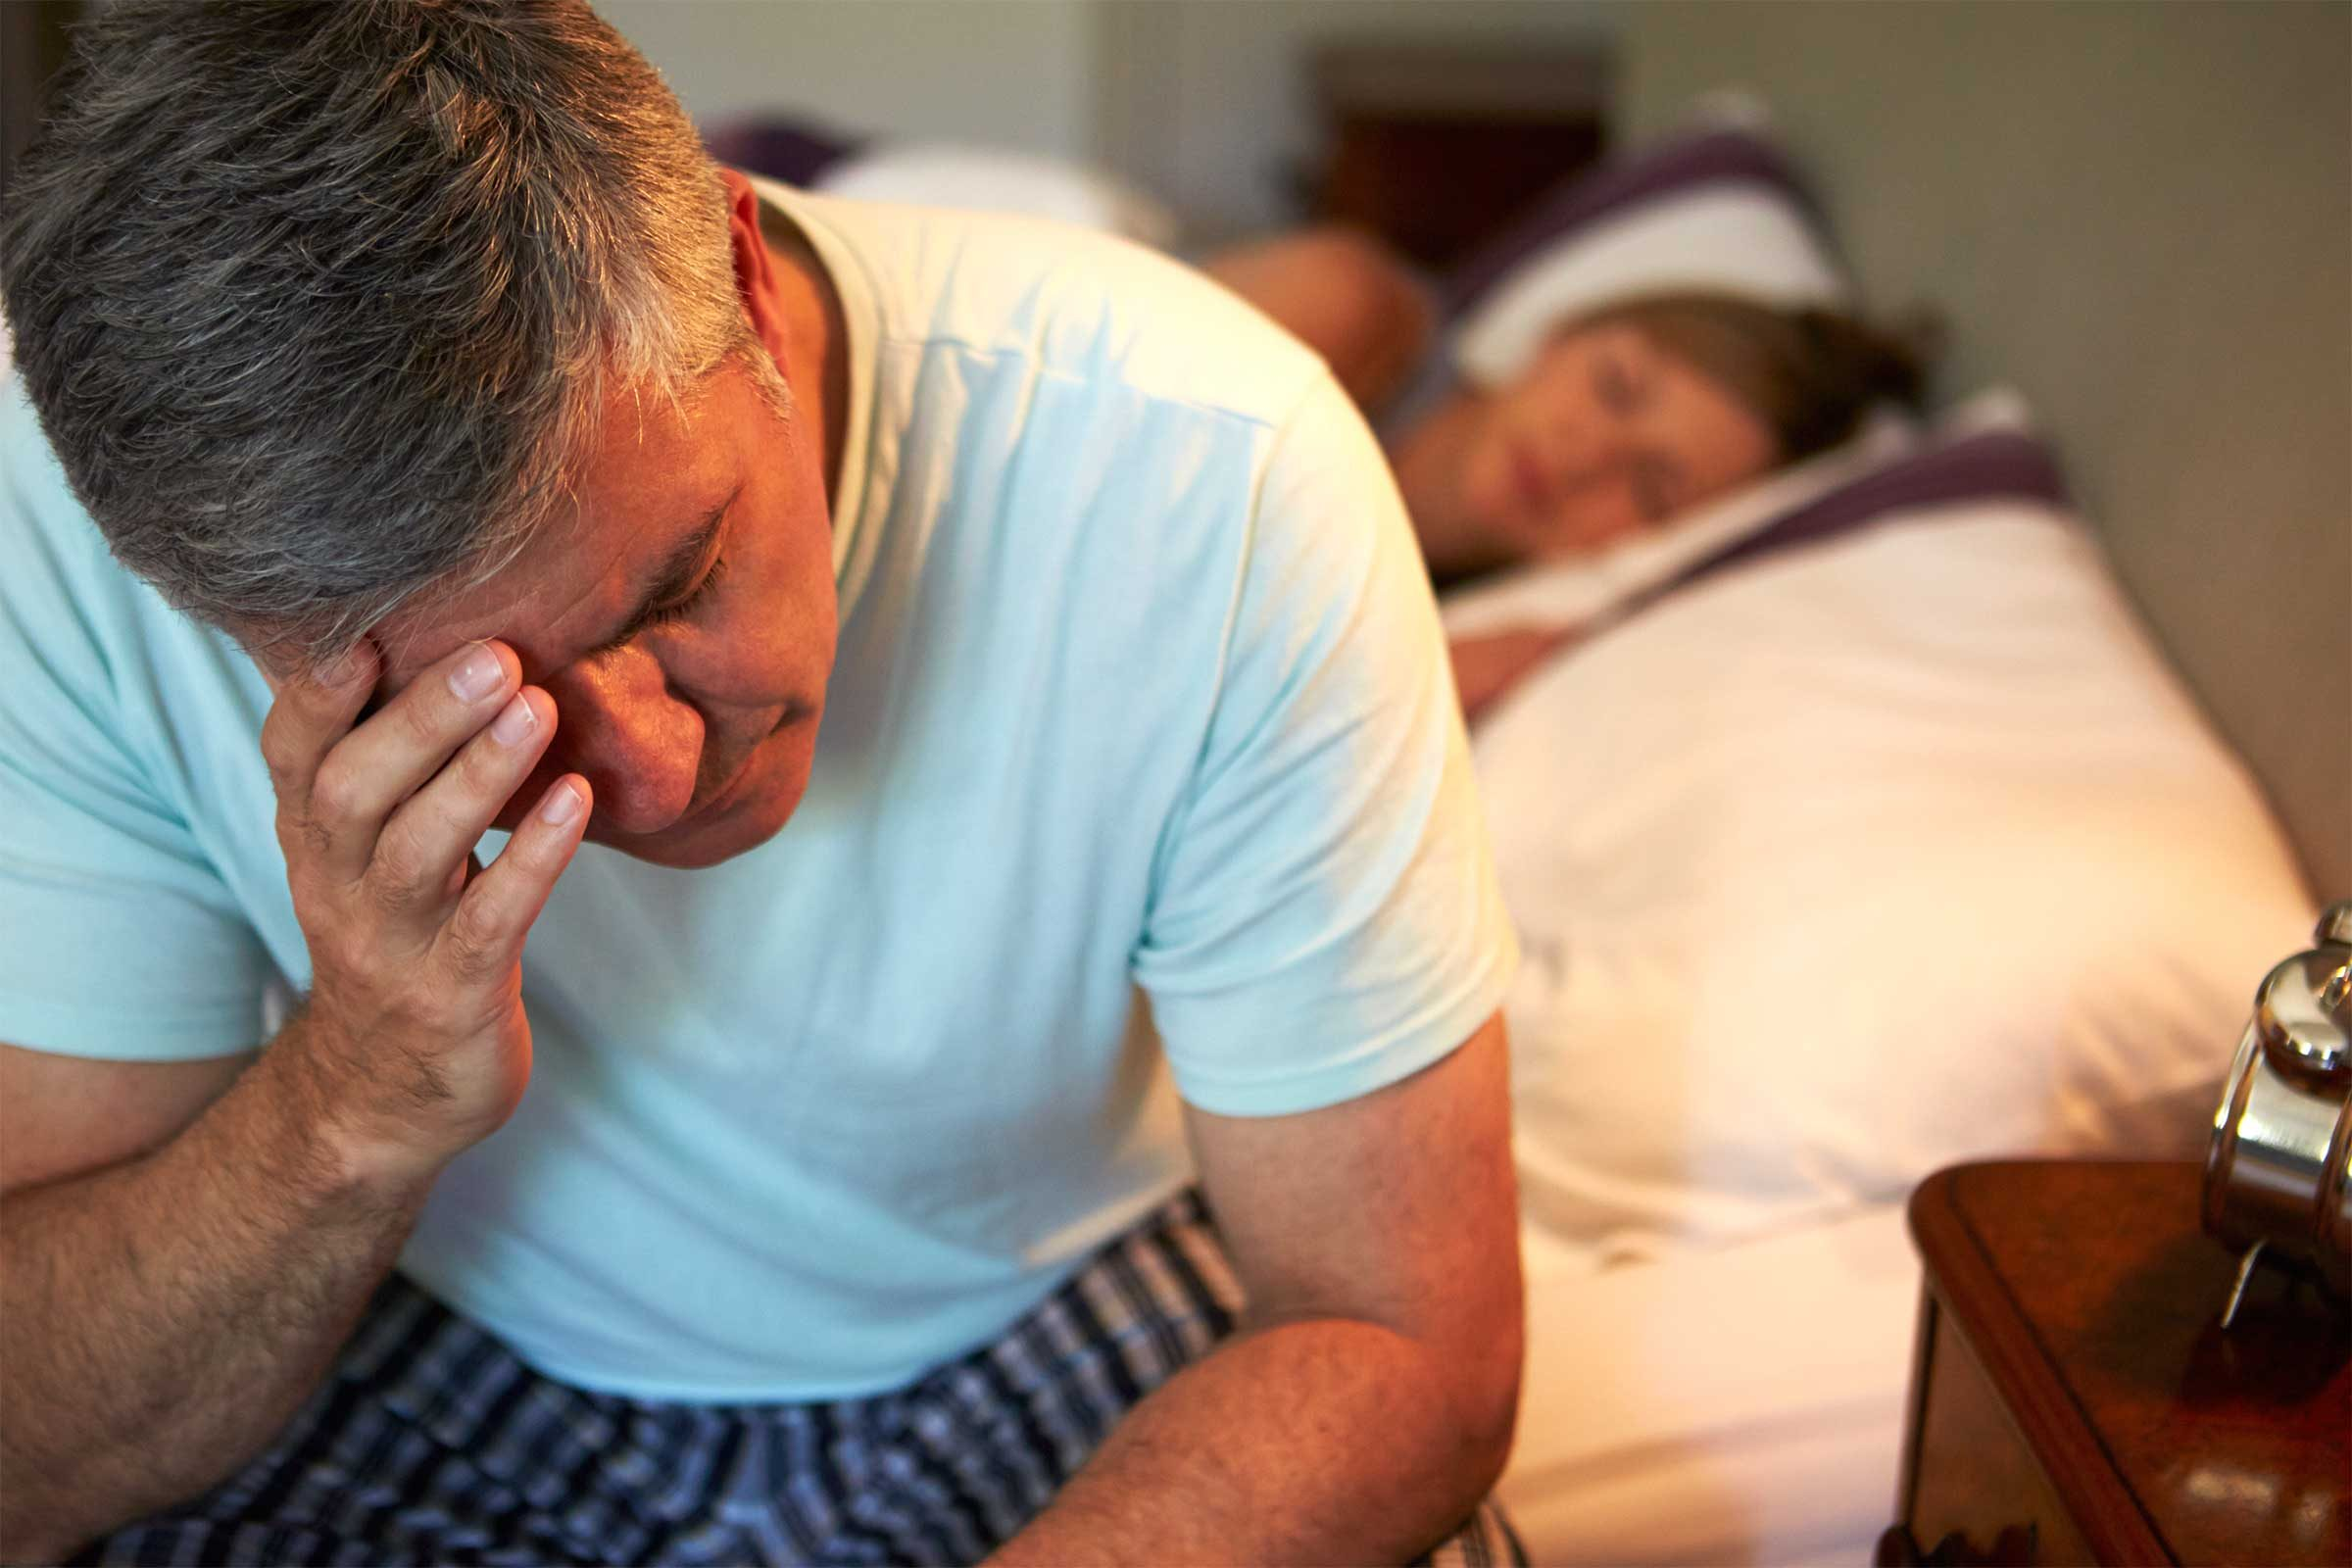 can hpv virus cause insomnia